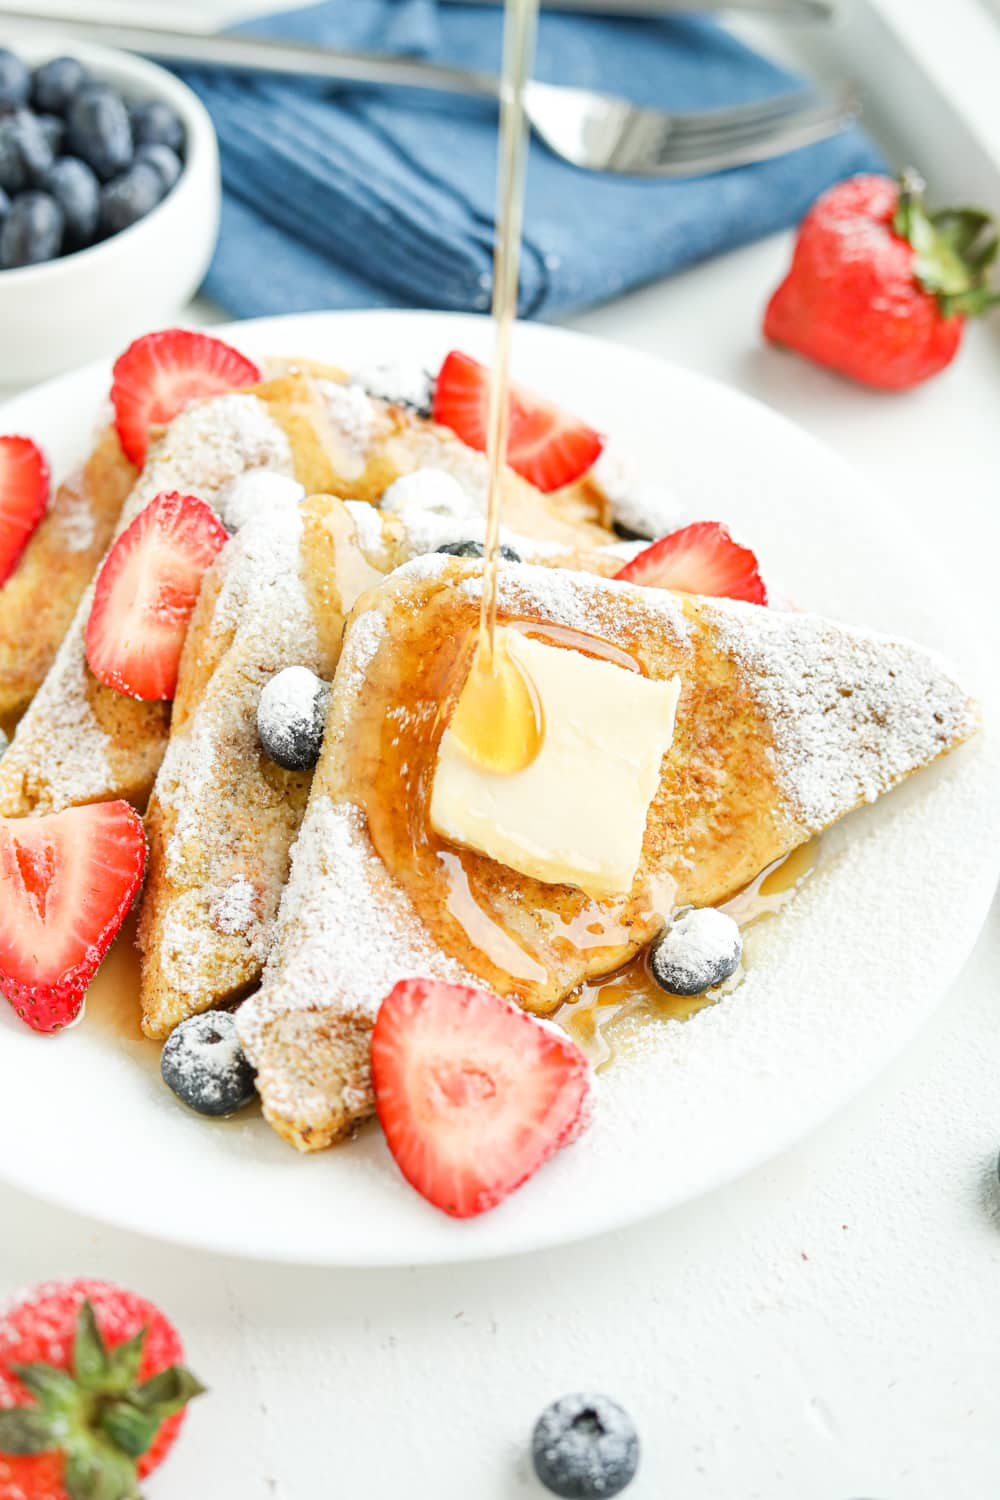 4 Slices of French toast on a white plate with syrup being poured on the toast.